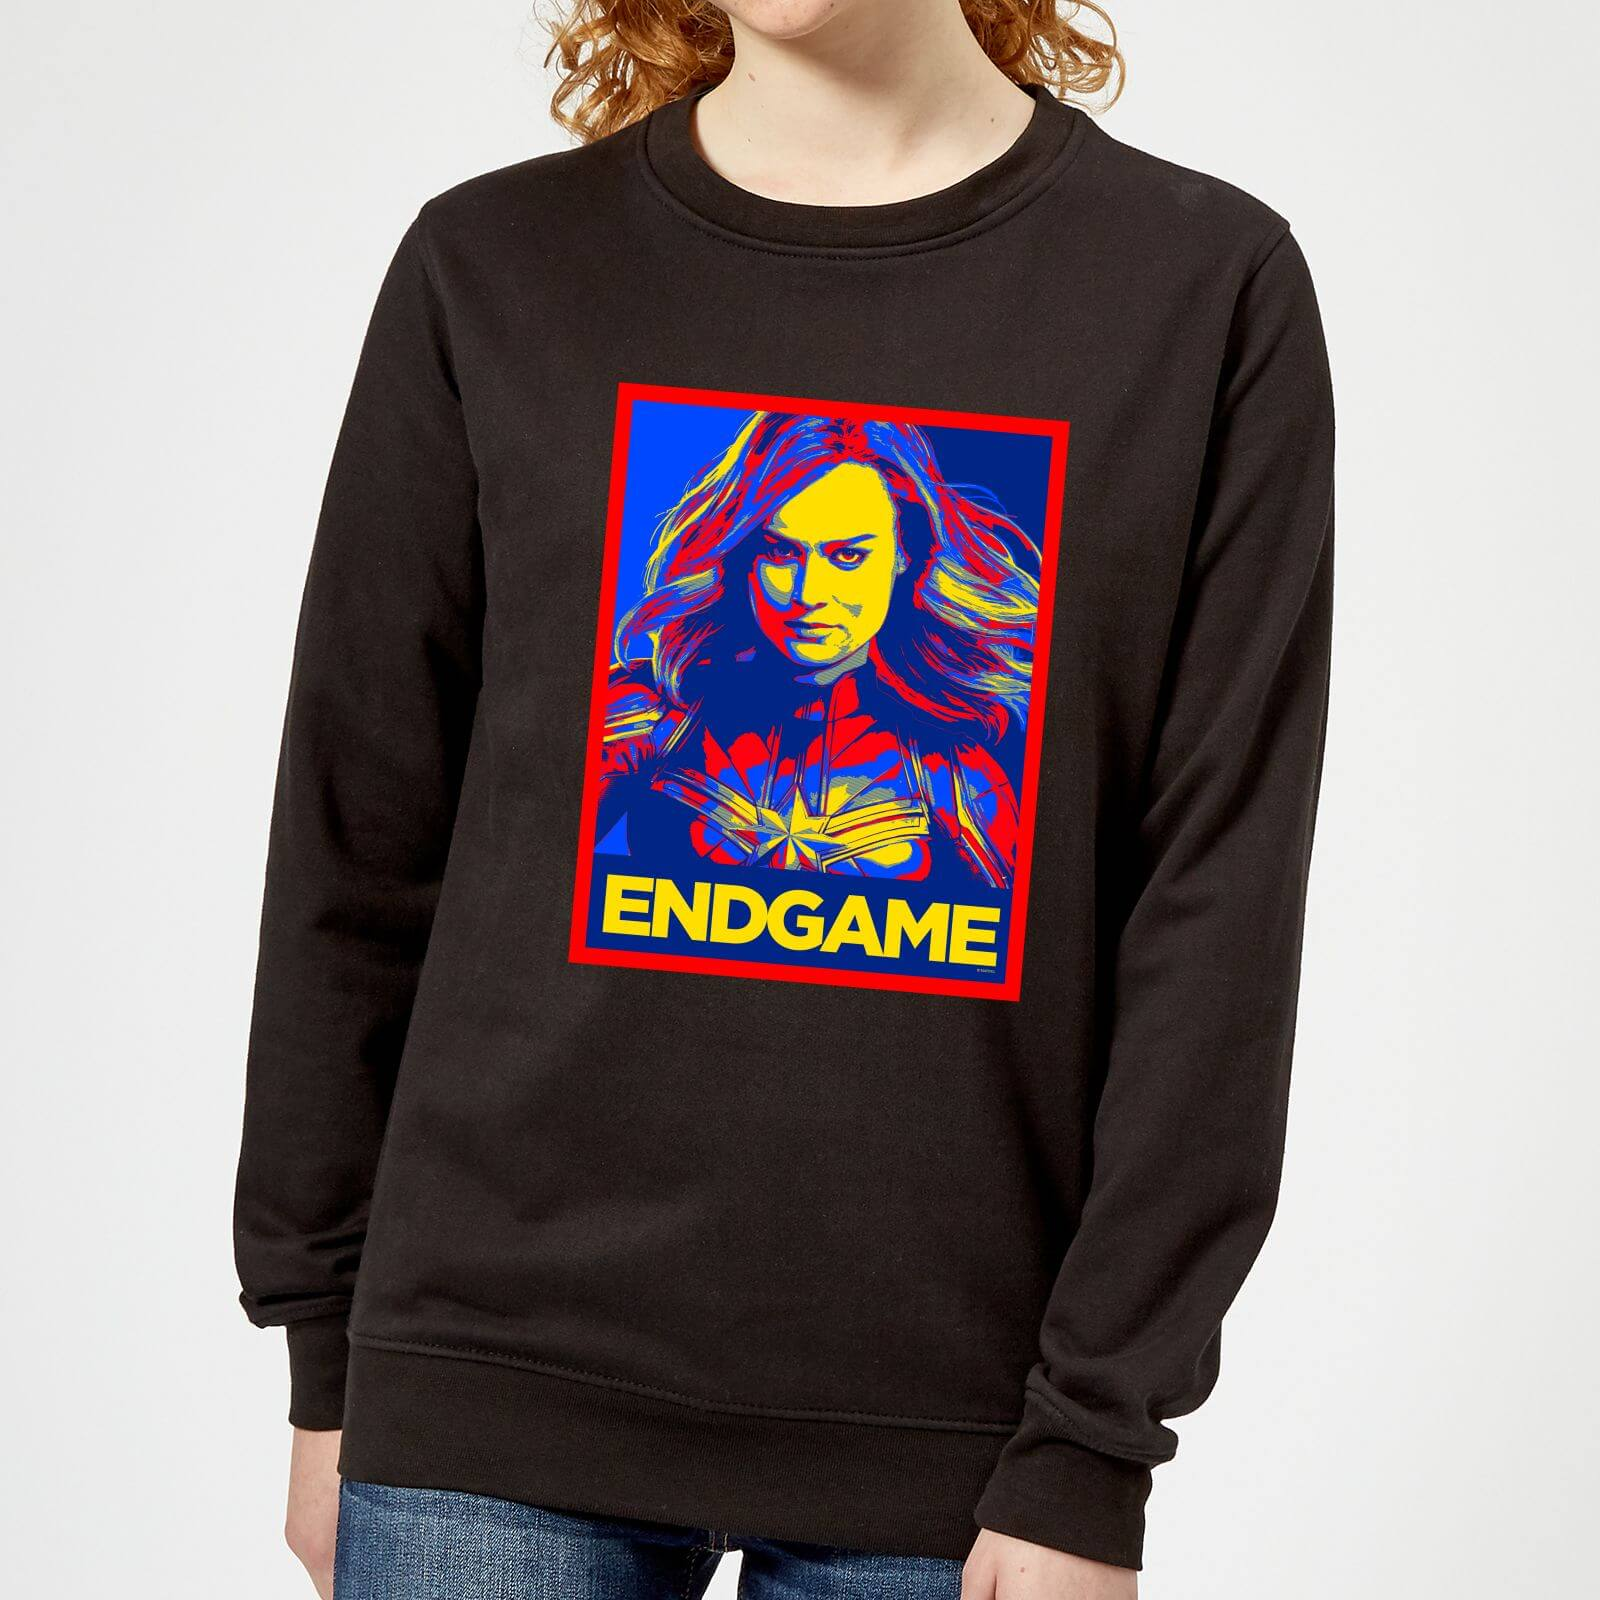 Marvel Avengers Endgame Captain Marvel Poster Women's Sweatshirt - Black - M - Black